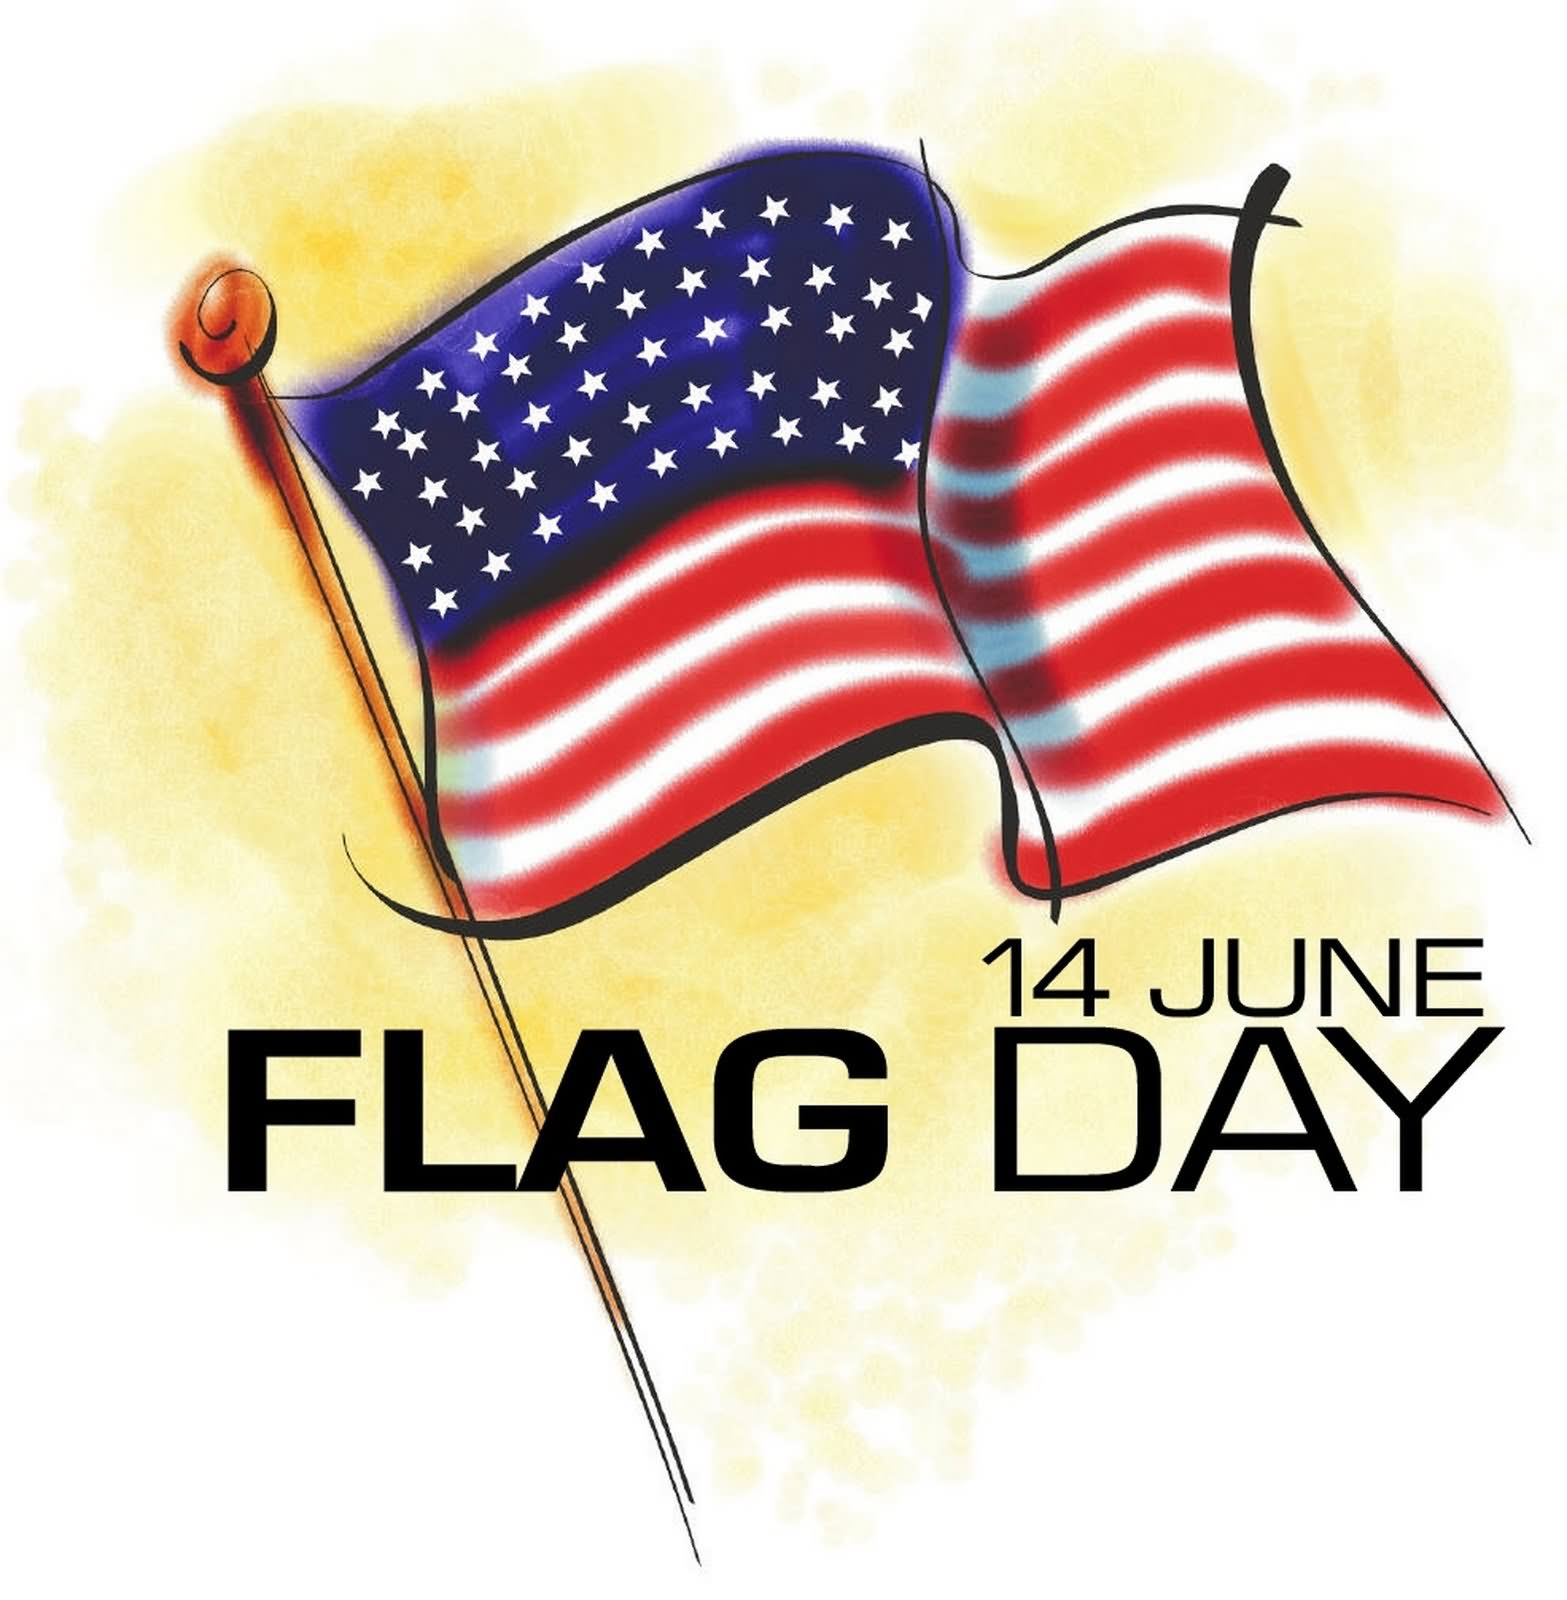 15 wonderful flag day clipart images and pictures rh askideas com june clipart 2018 june clip art images free